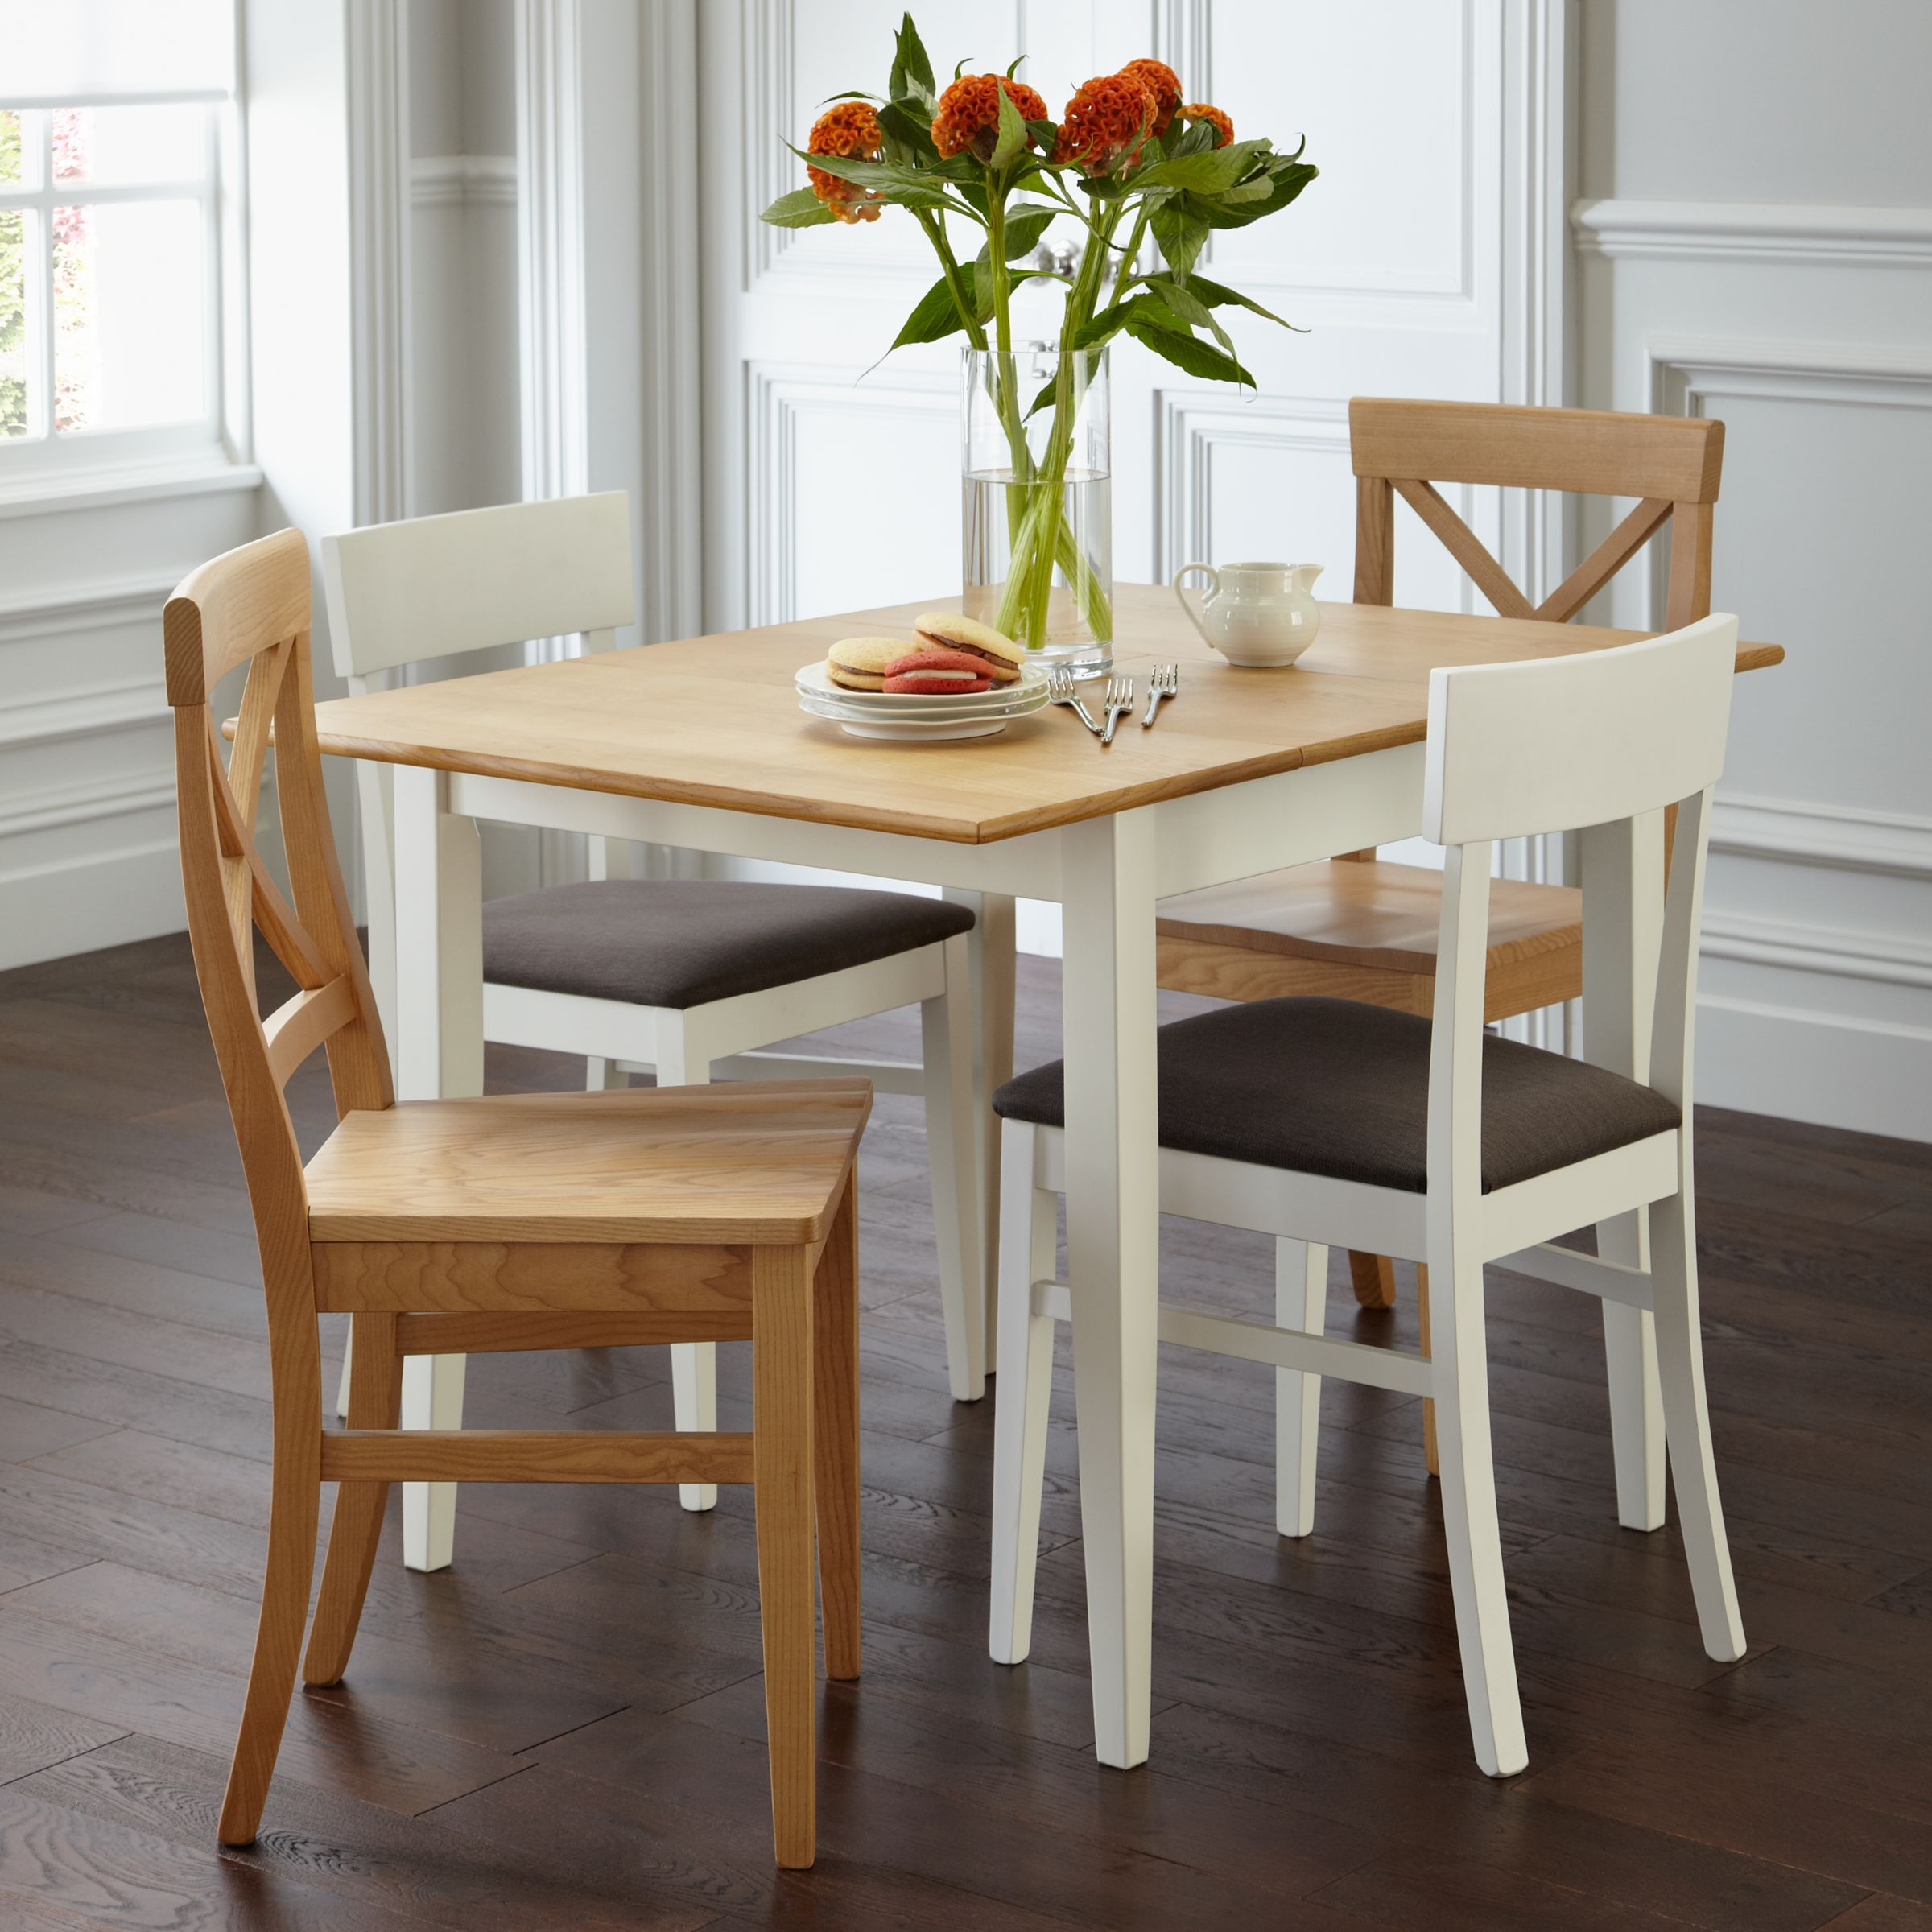 Picture of: John Lewis Lacock 4 Seater Square Extending Dining Table White Oak At John Lewis Partners